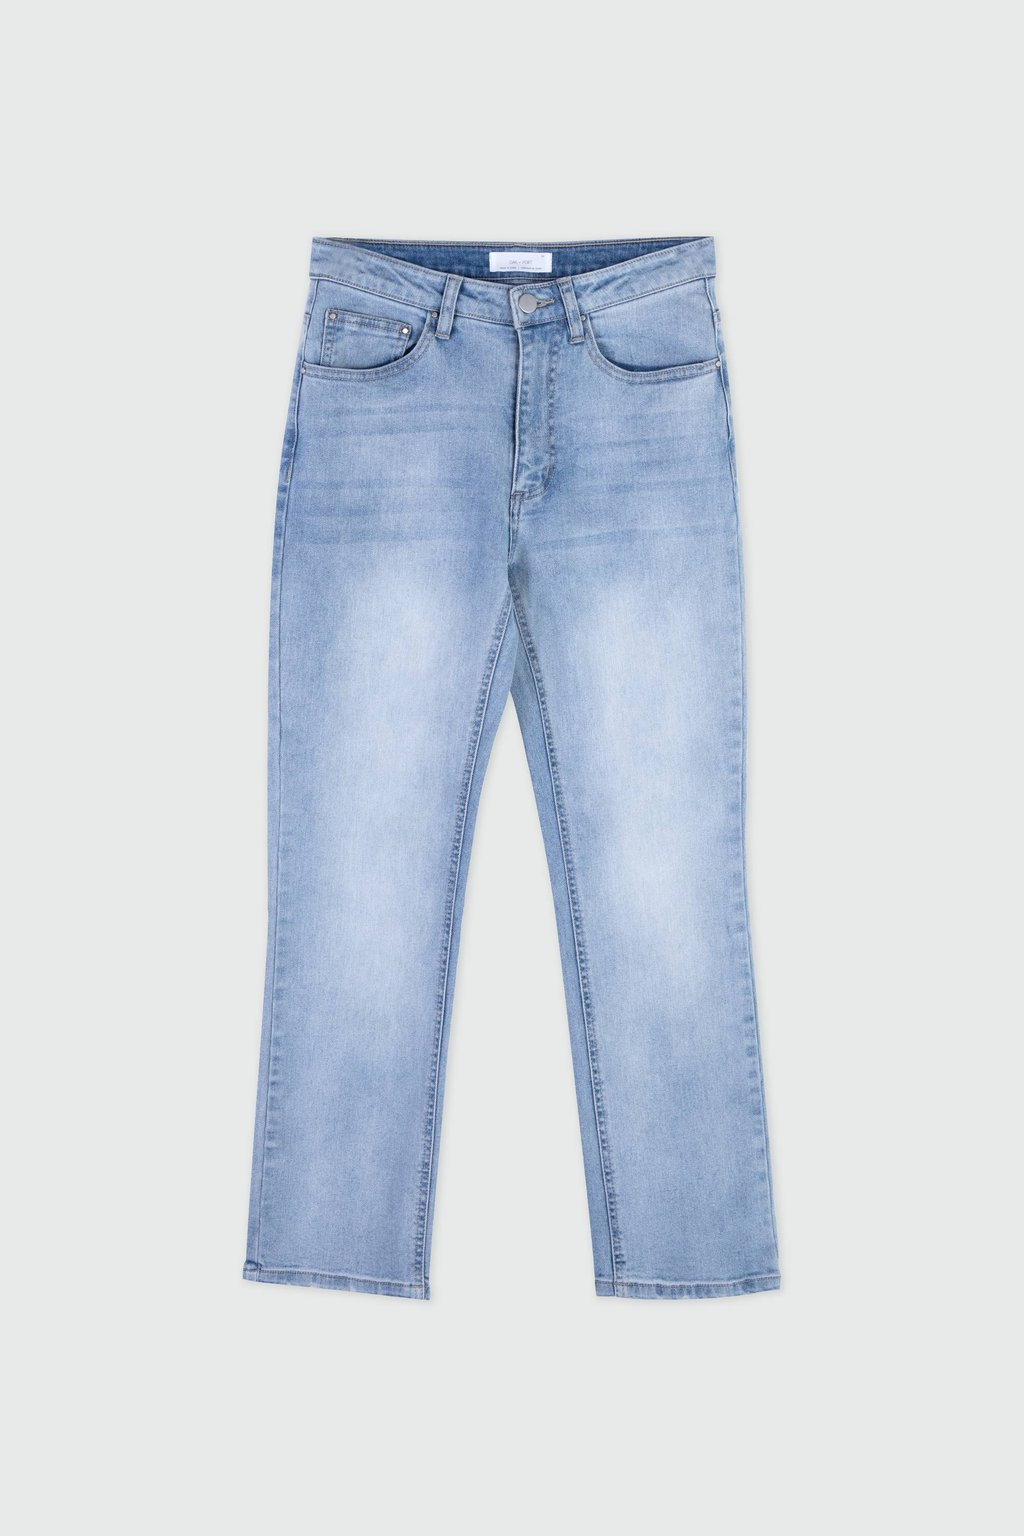 Jean 23722019 Light Indigo 5